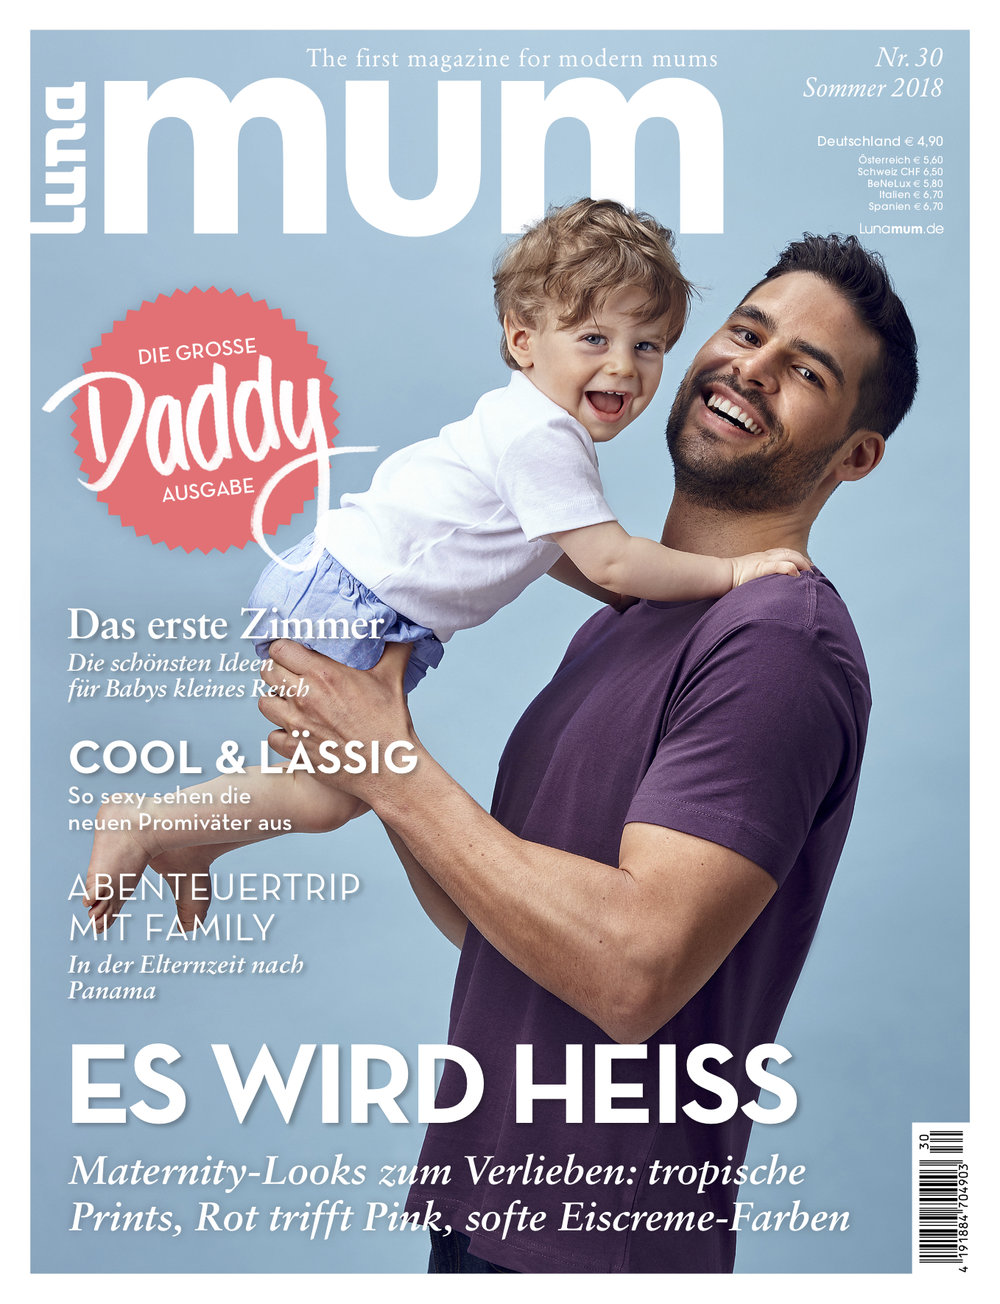 mum_DADDY_Cover.jpg